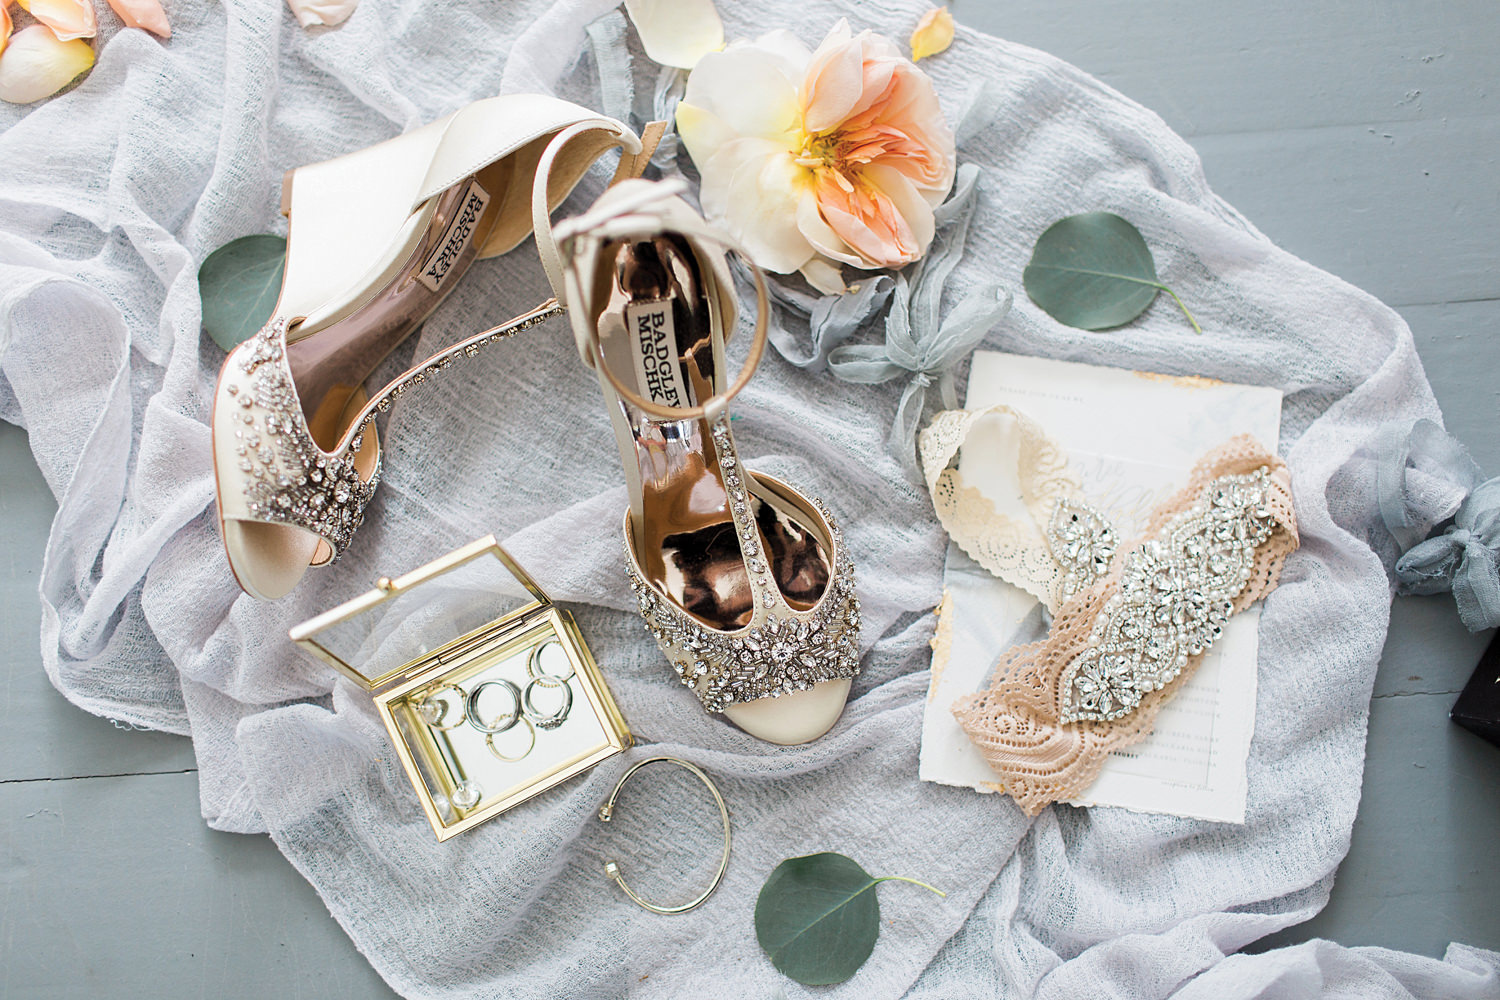 Flatlay of bridal details including garter, jewelry, and badgley mishka wedding shoes.